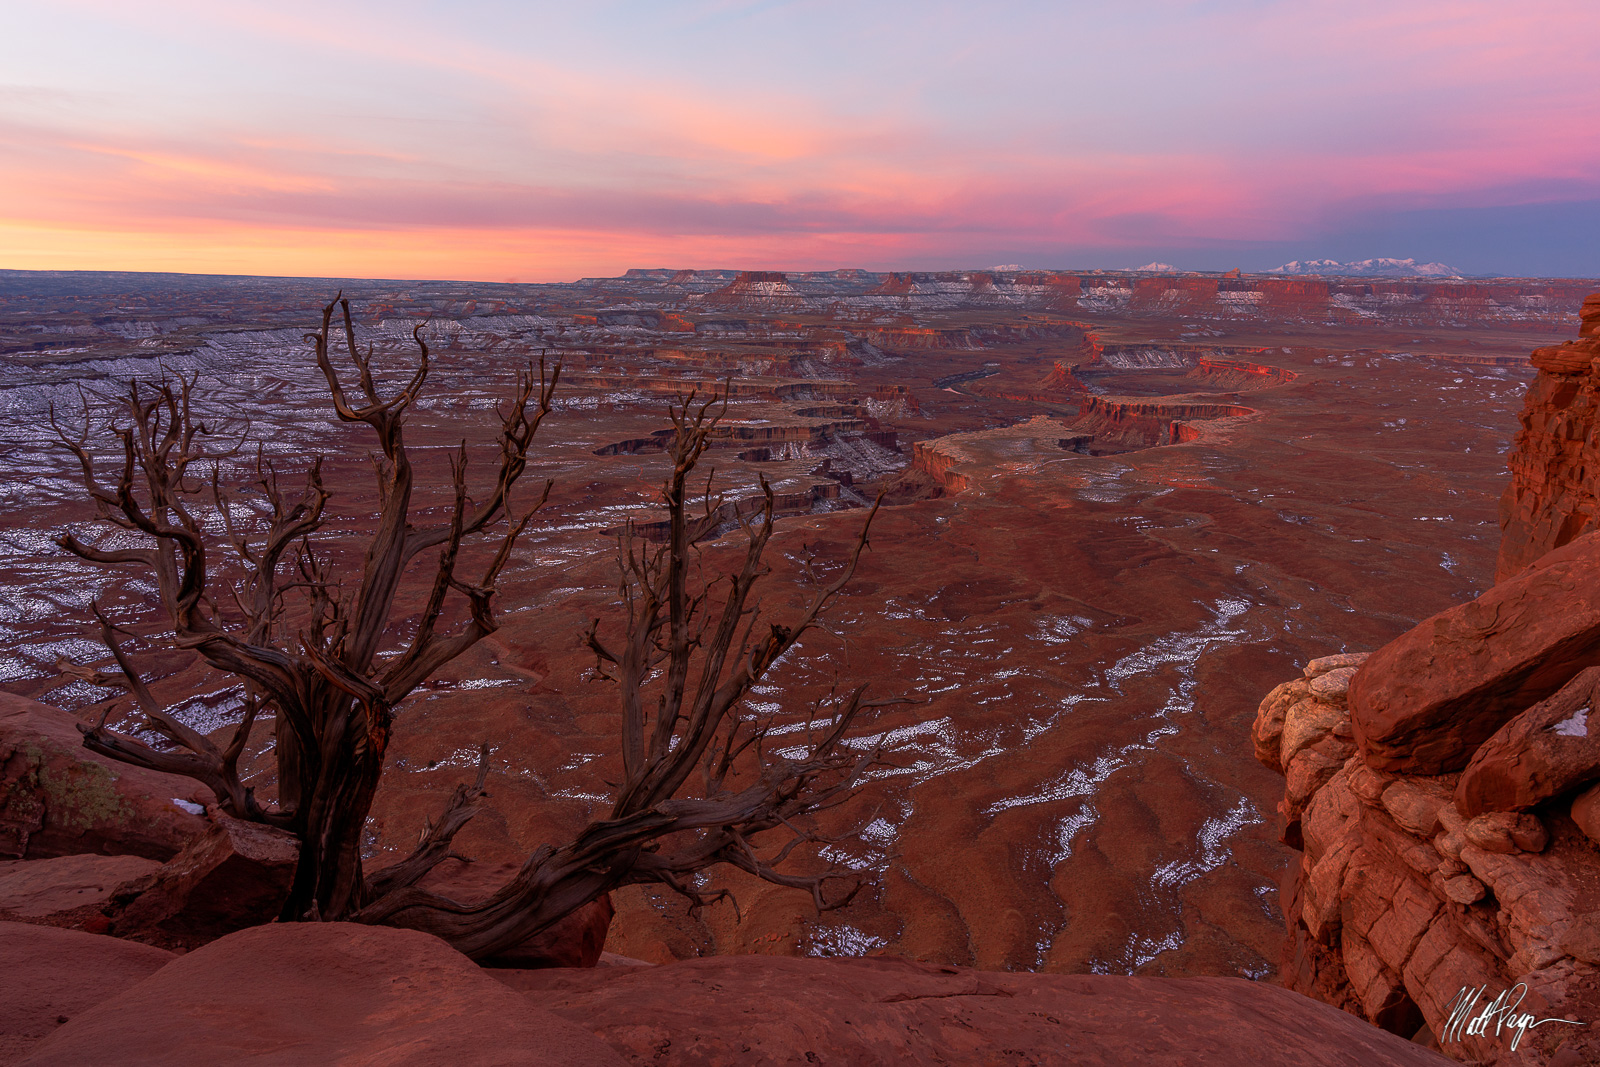 Canyonlands, Canyonlands National Park, Canyons, Grand Scenic, Green River, Green River Overlook, Island in the Sky, Mountains, Snow, Sunrise, Utah, Winter, desert, pastel, tree, photo